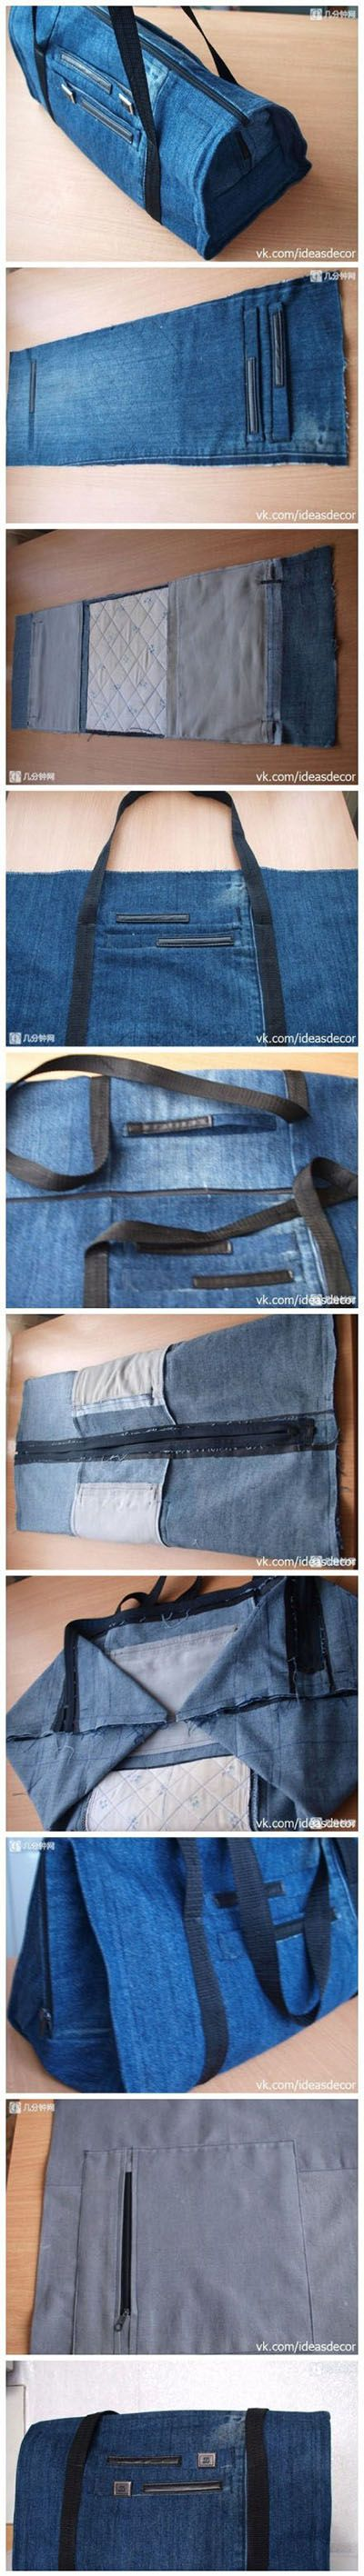 Diy Jean Bag | DIY  Crafts